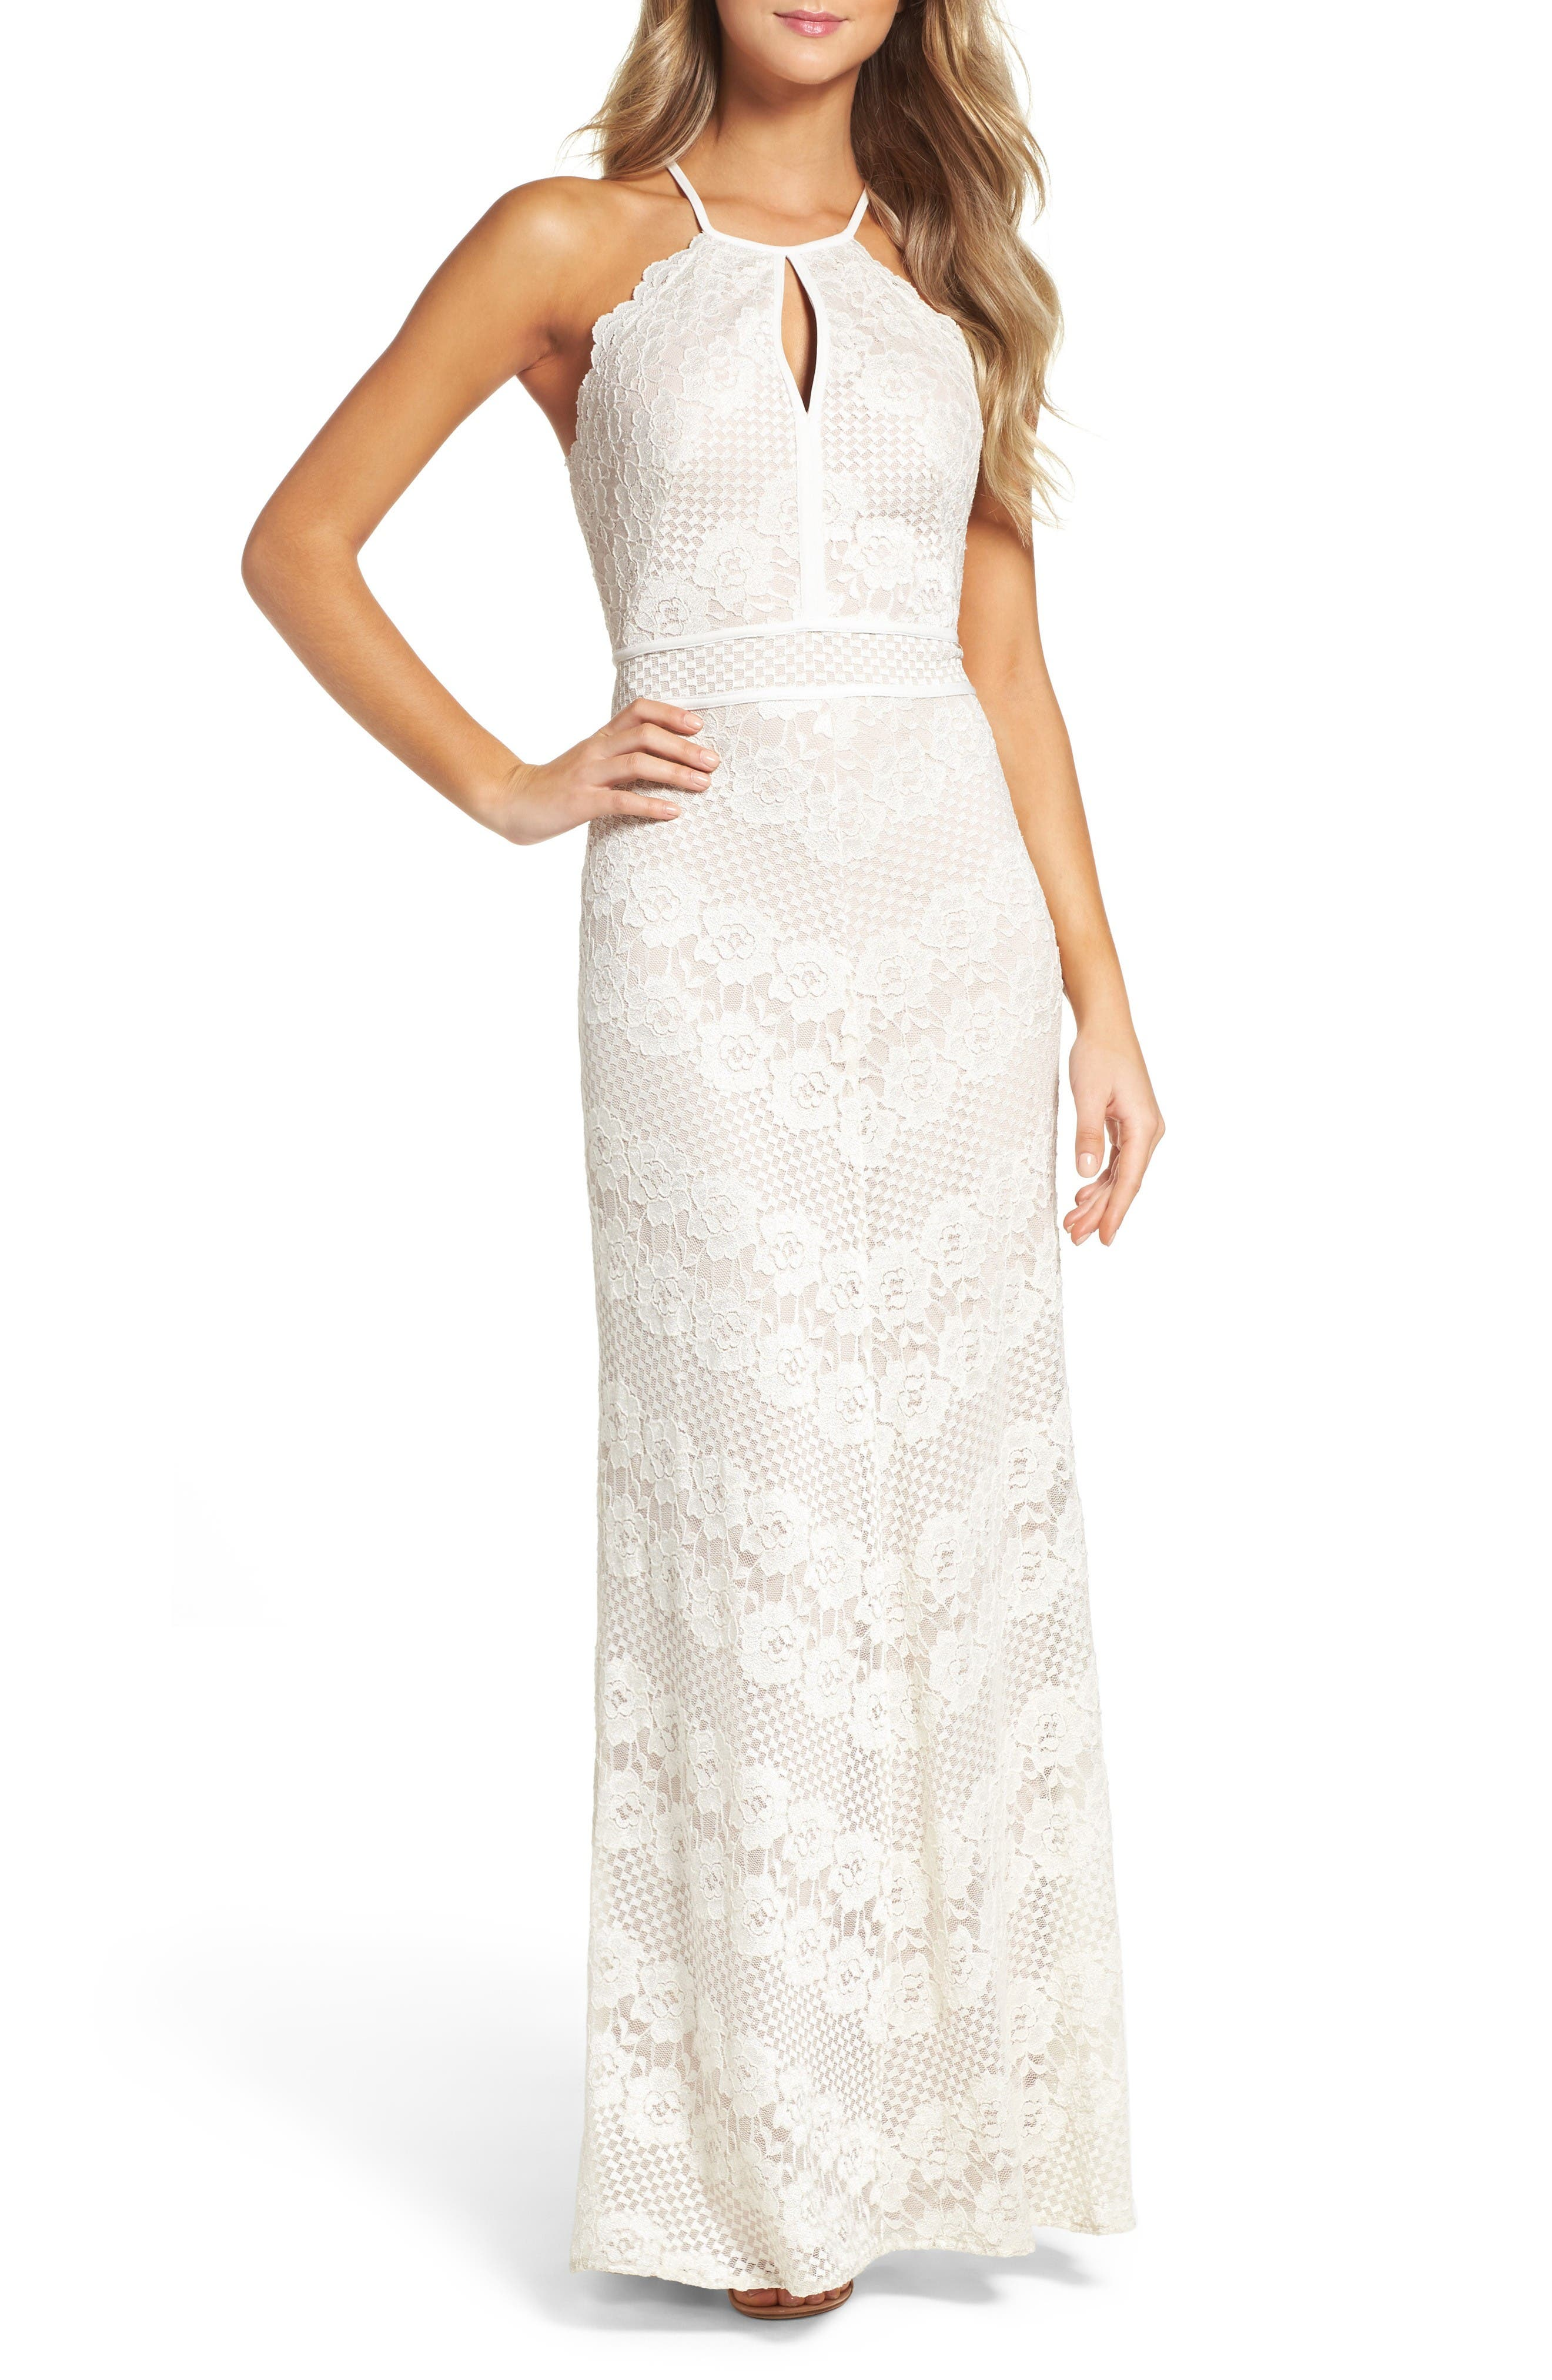 Crisscross Lace Gown,                         Main,                         color, Ivory/ Nude